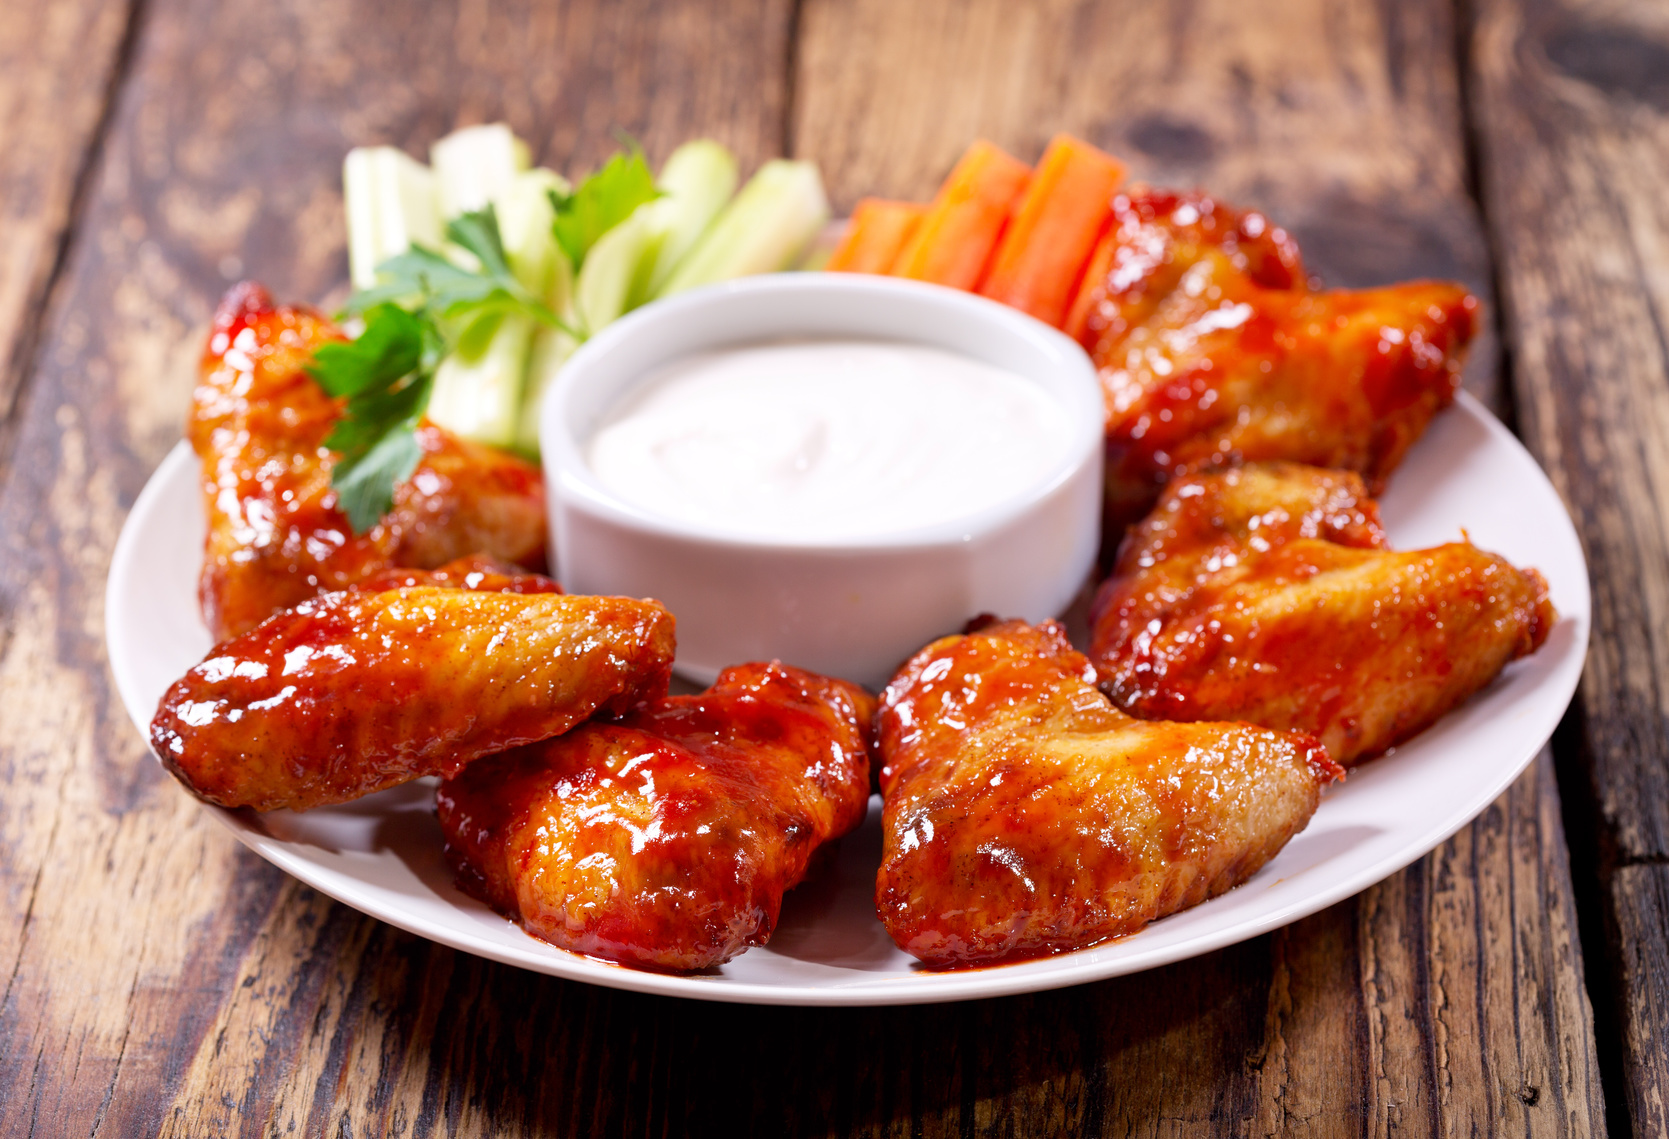 plate of fried chicken wings with sauce